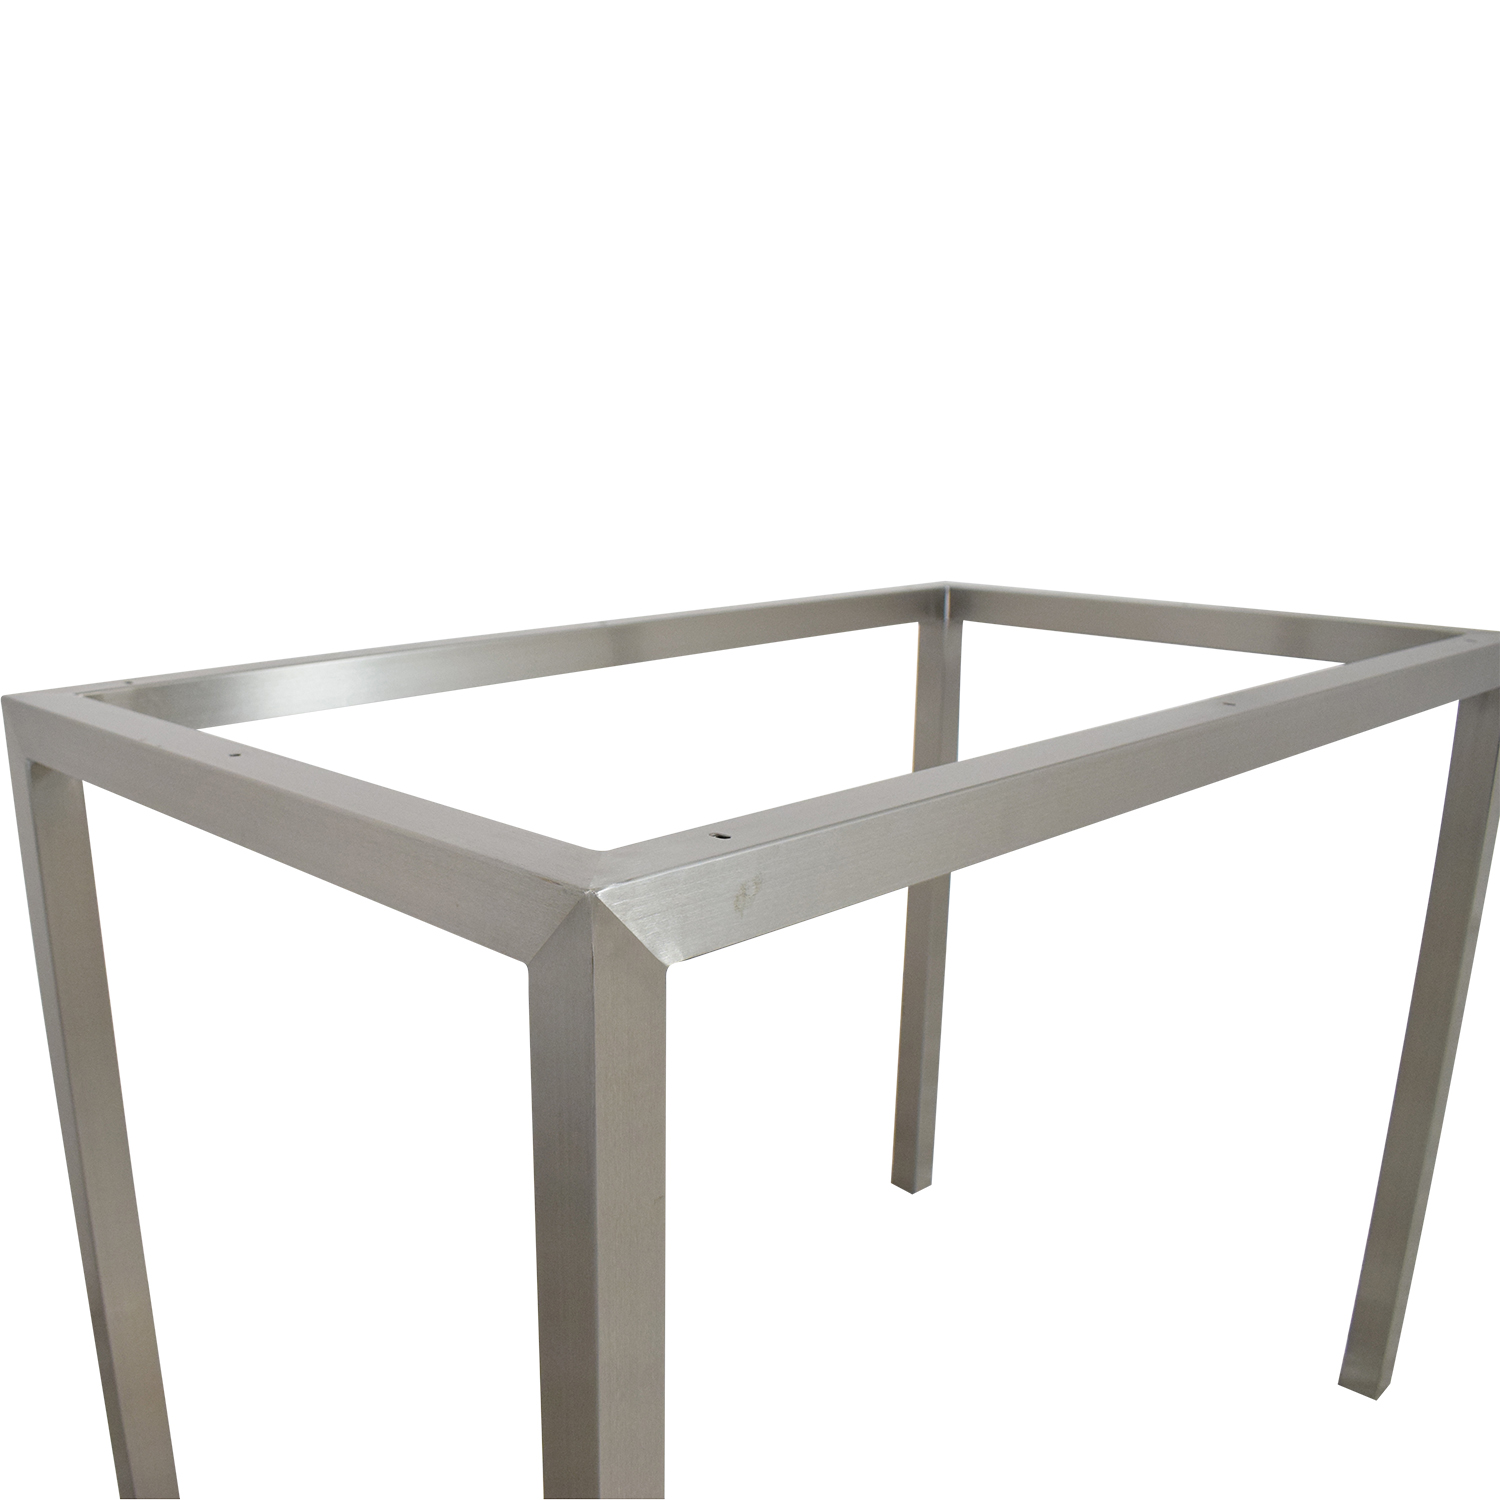 buy Crate & Barrel Crate & Barrel Parsons Dining Table Base Only online